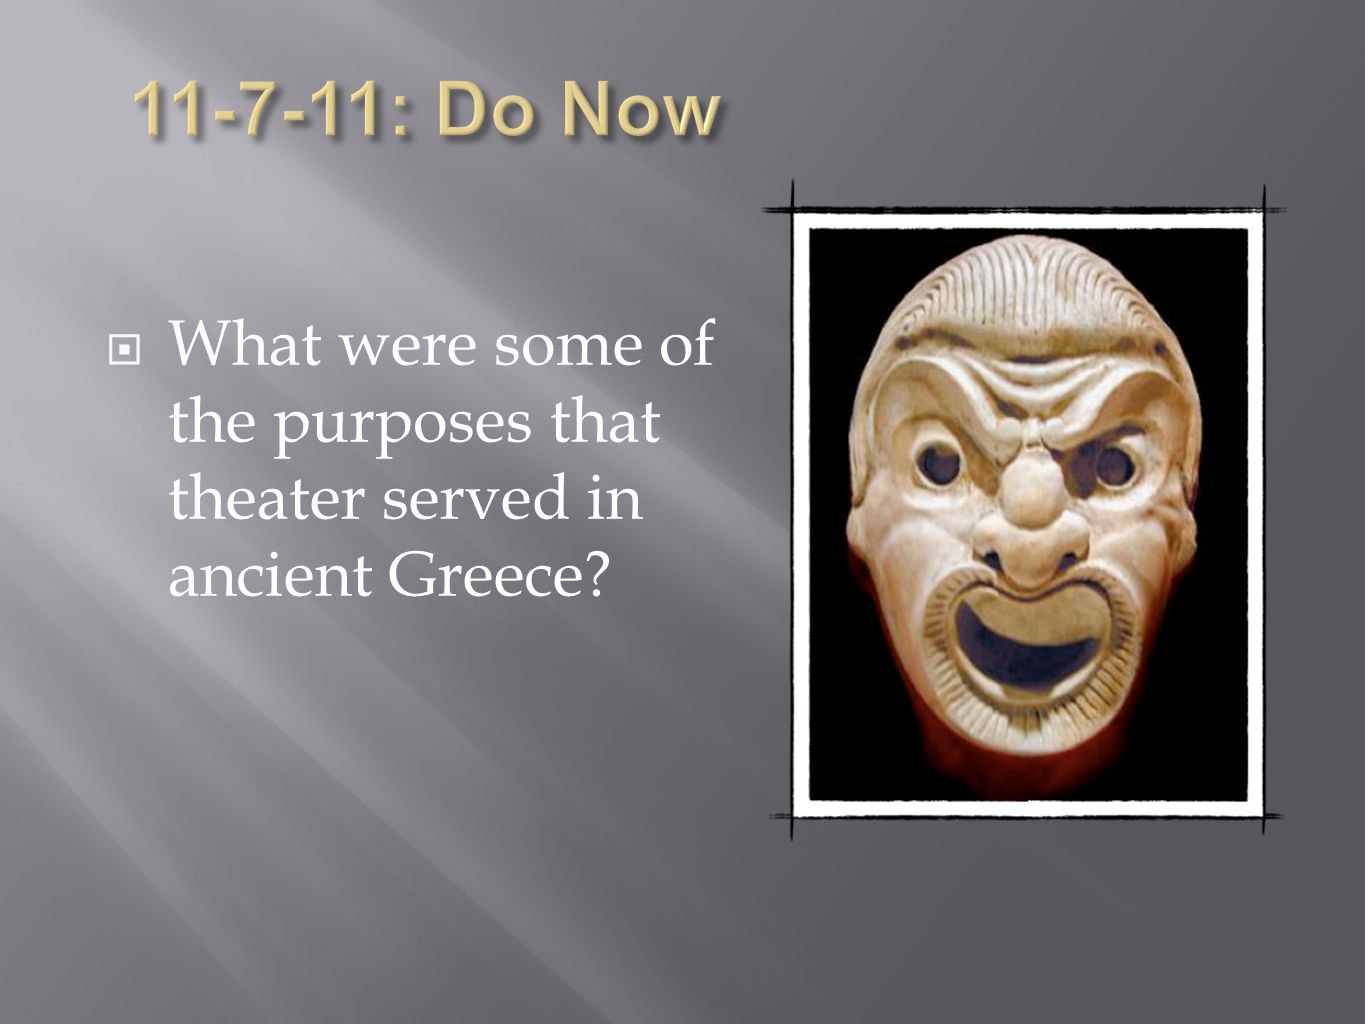  What were some of the purposes that theater served in ancient Greece